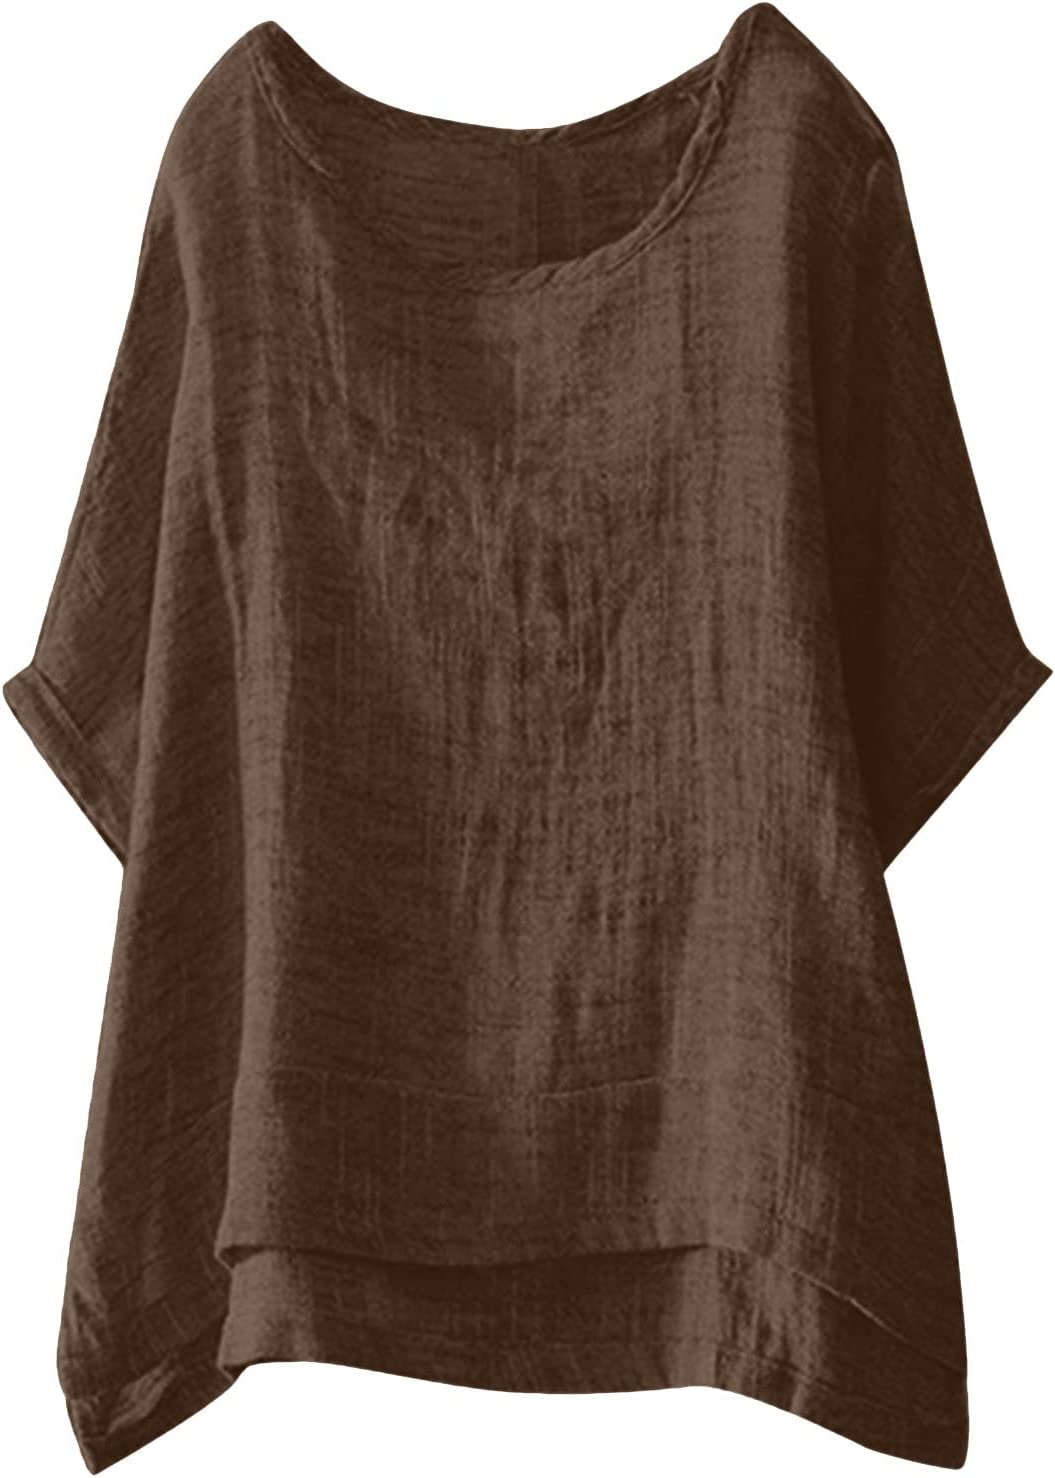 Round Neck Five-Point Sleeve T-Shirt, Solid Color top, Women's Large Size top, Women O-Neck Solid Three Quarter Sleeve Cotton